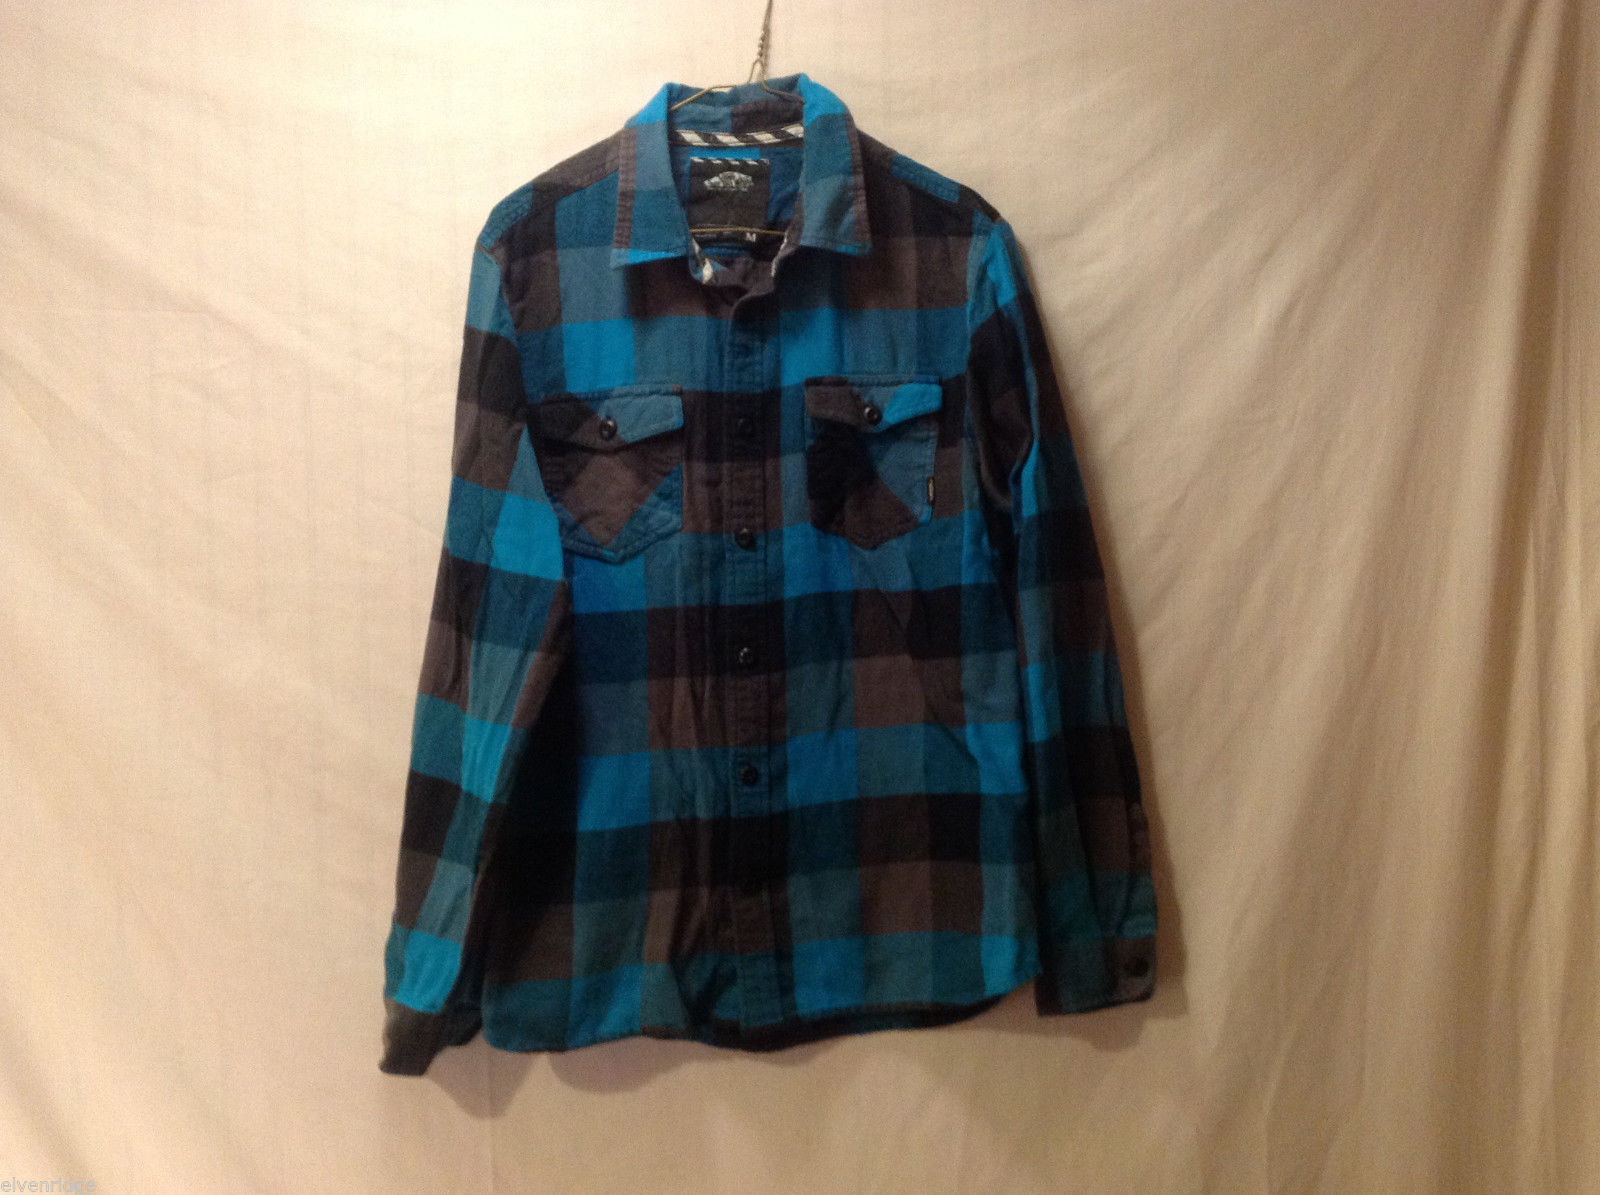 Vans Off The Wall Size M Button-Down Shirt Buffalo Plaid Check Black Brown Blue